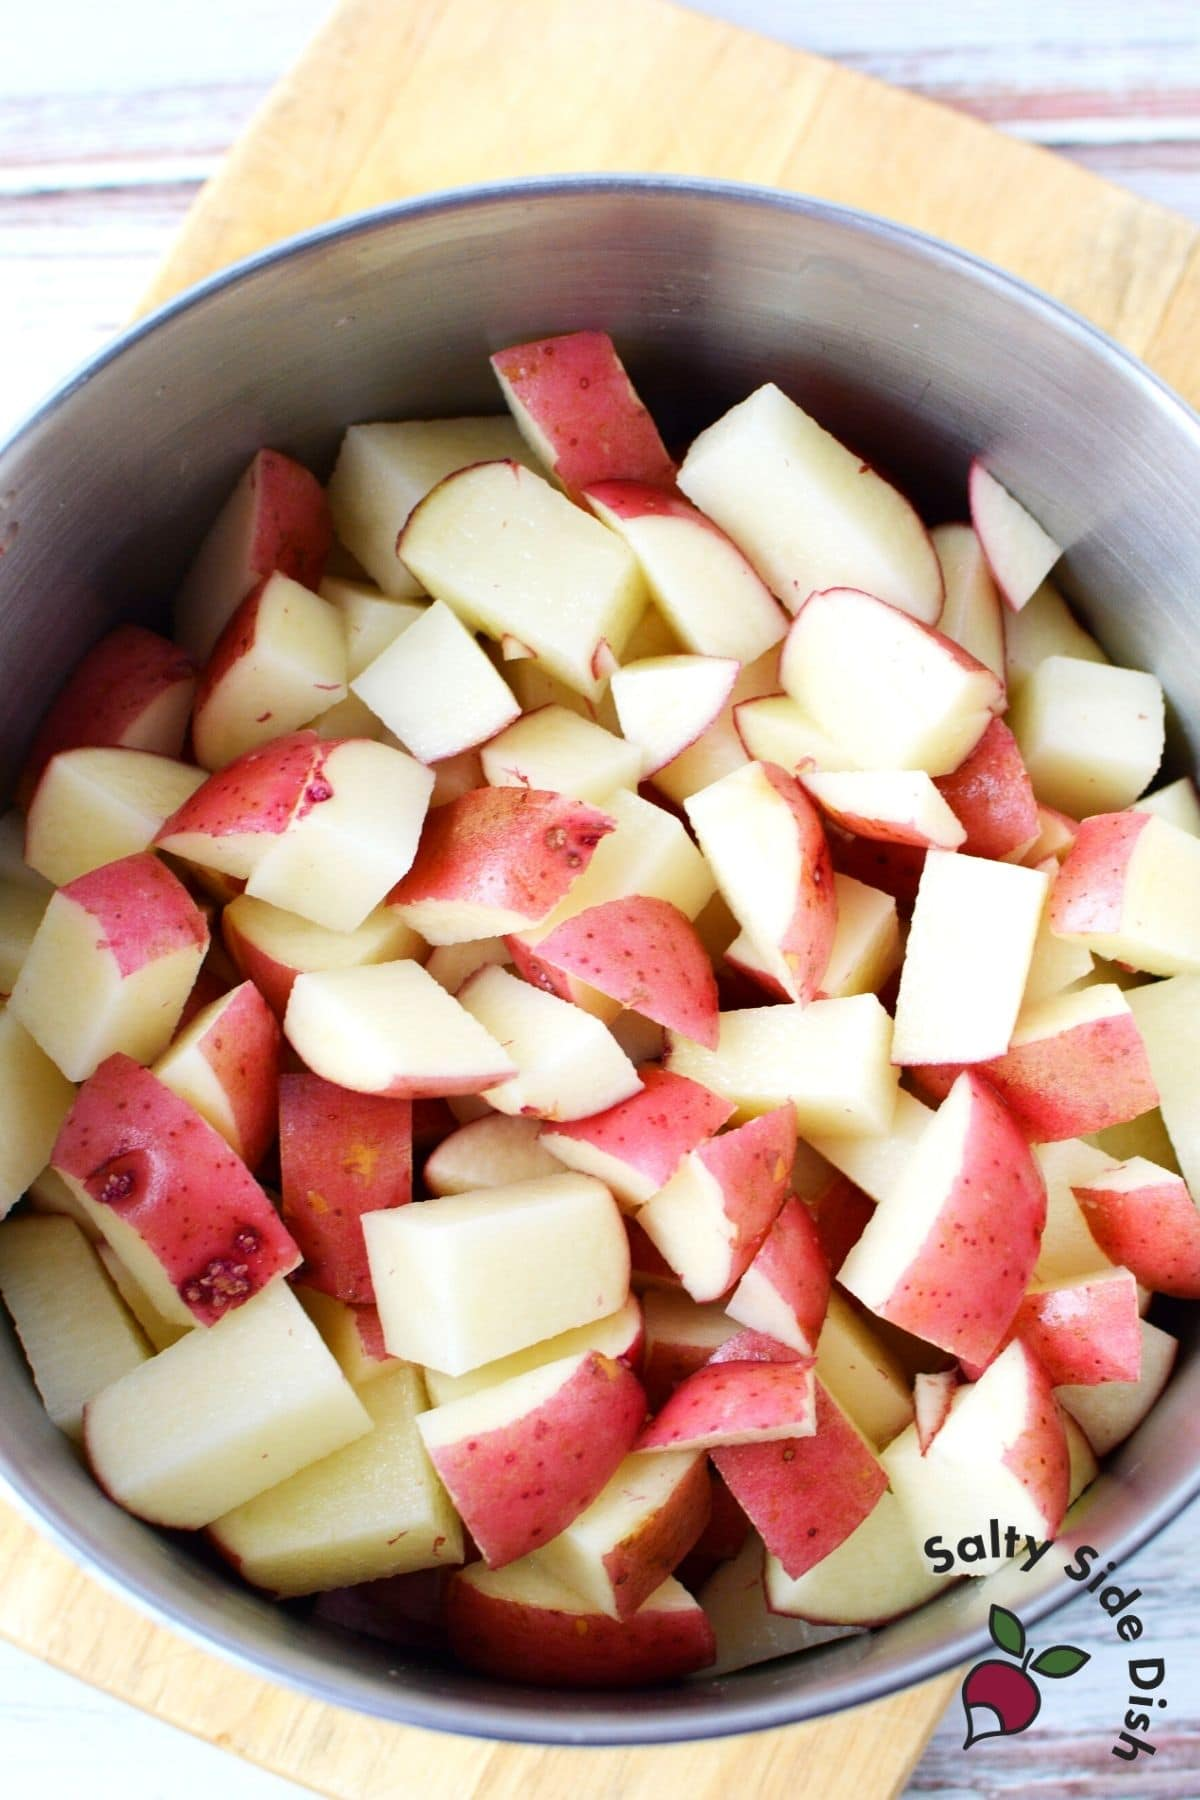 prepping boiled red potatoes in a pot